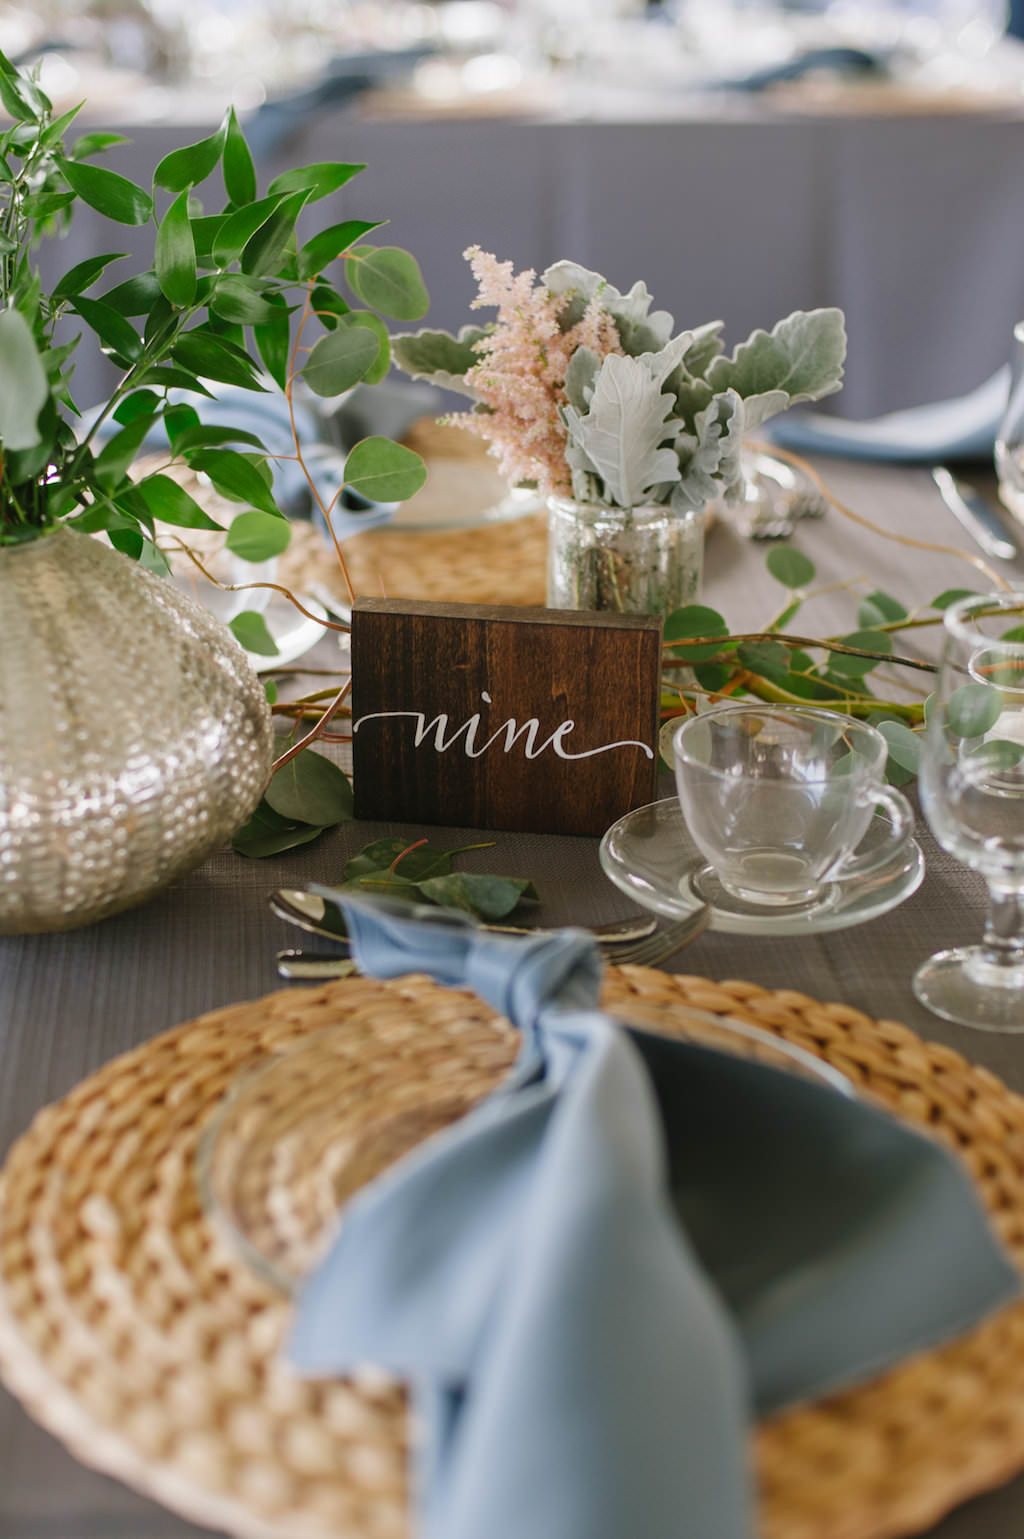 Outdoor Tented Wedding Reception with Organic Greenery Inspired Decor, Long Feasting Tables, Wicker Placemat Chargers, Wooden Table Numbers and Candle Centerpieces | Sarasota Wedding Planner Jennifer Matteo Event Planning